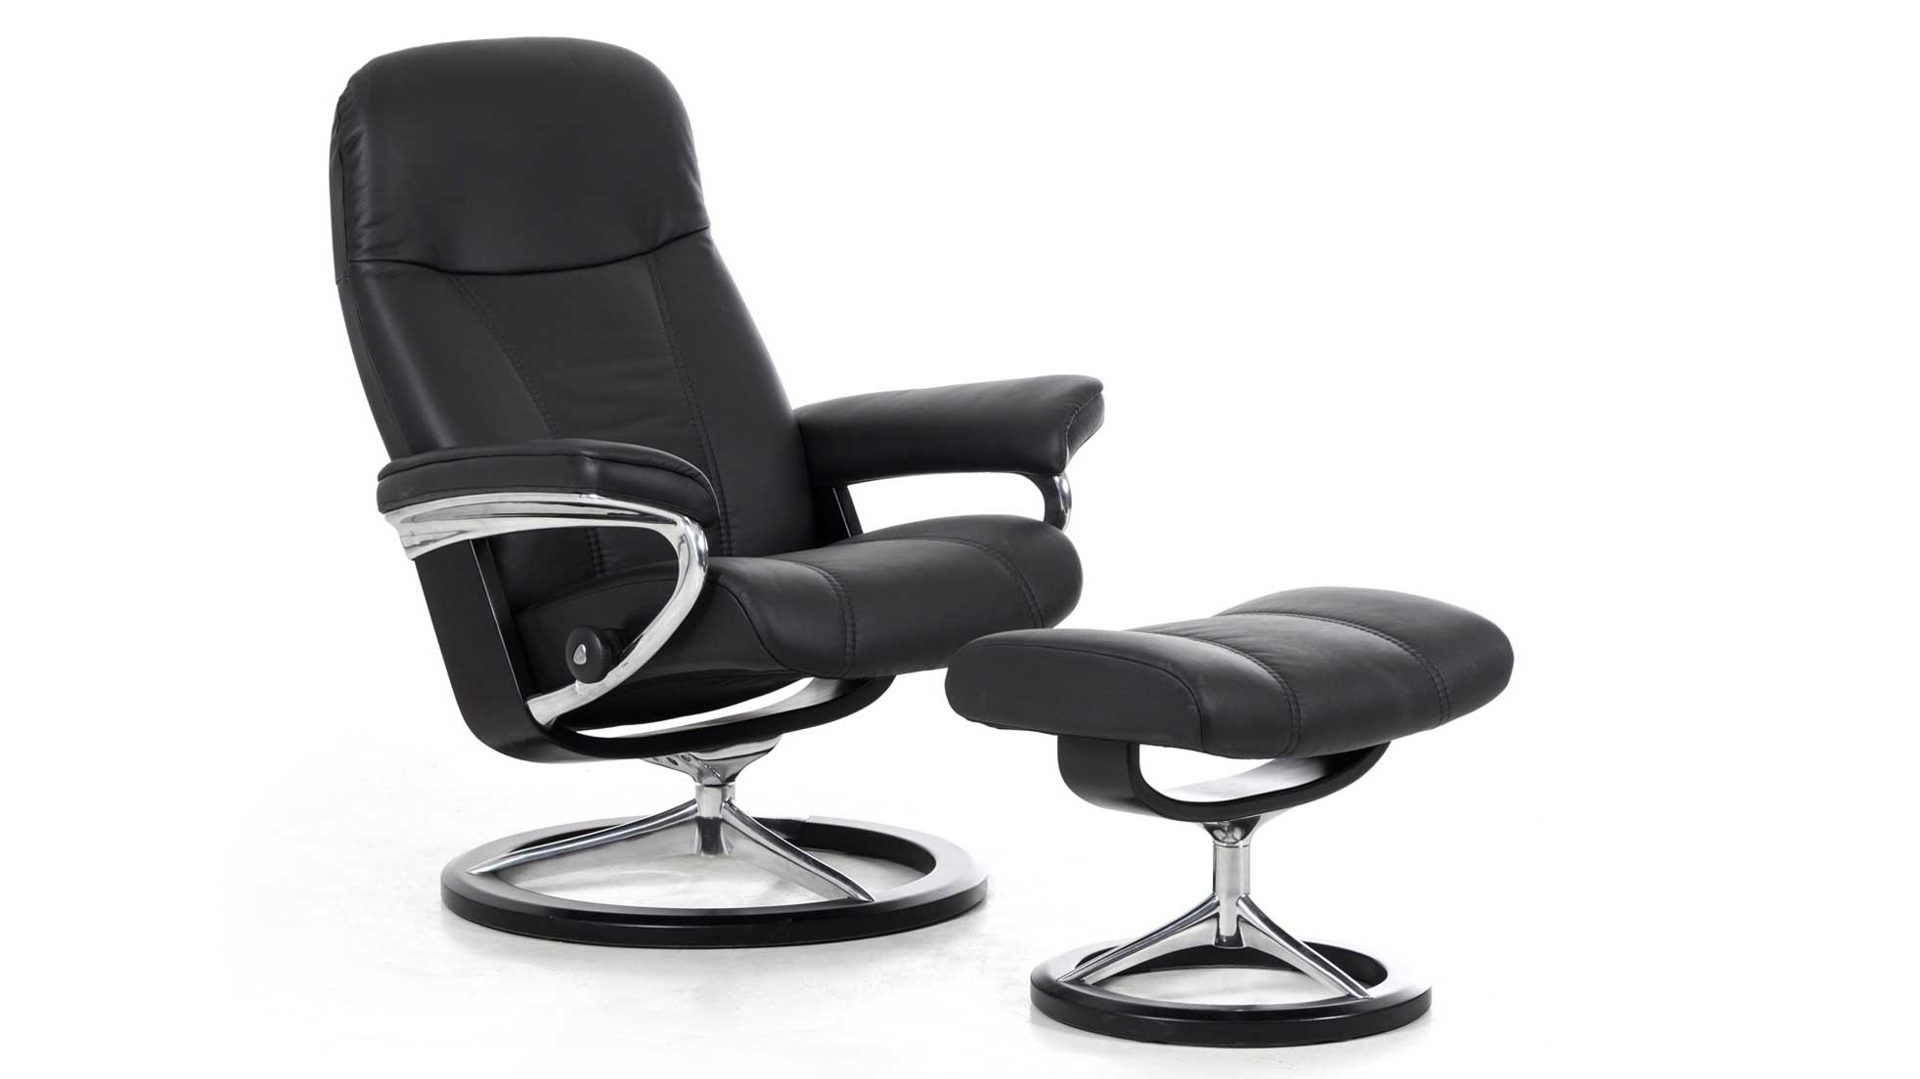 Stressless Consul M Signature Relax Sessel Und Hocker Leder Medium Leder Bad Homburg Bei Frankfurt